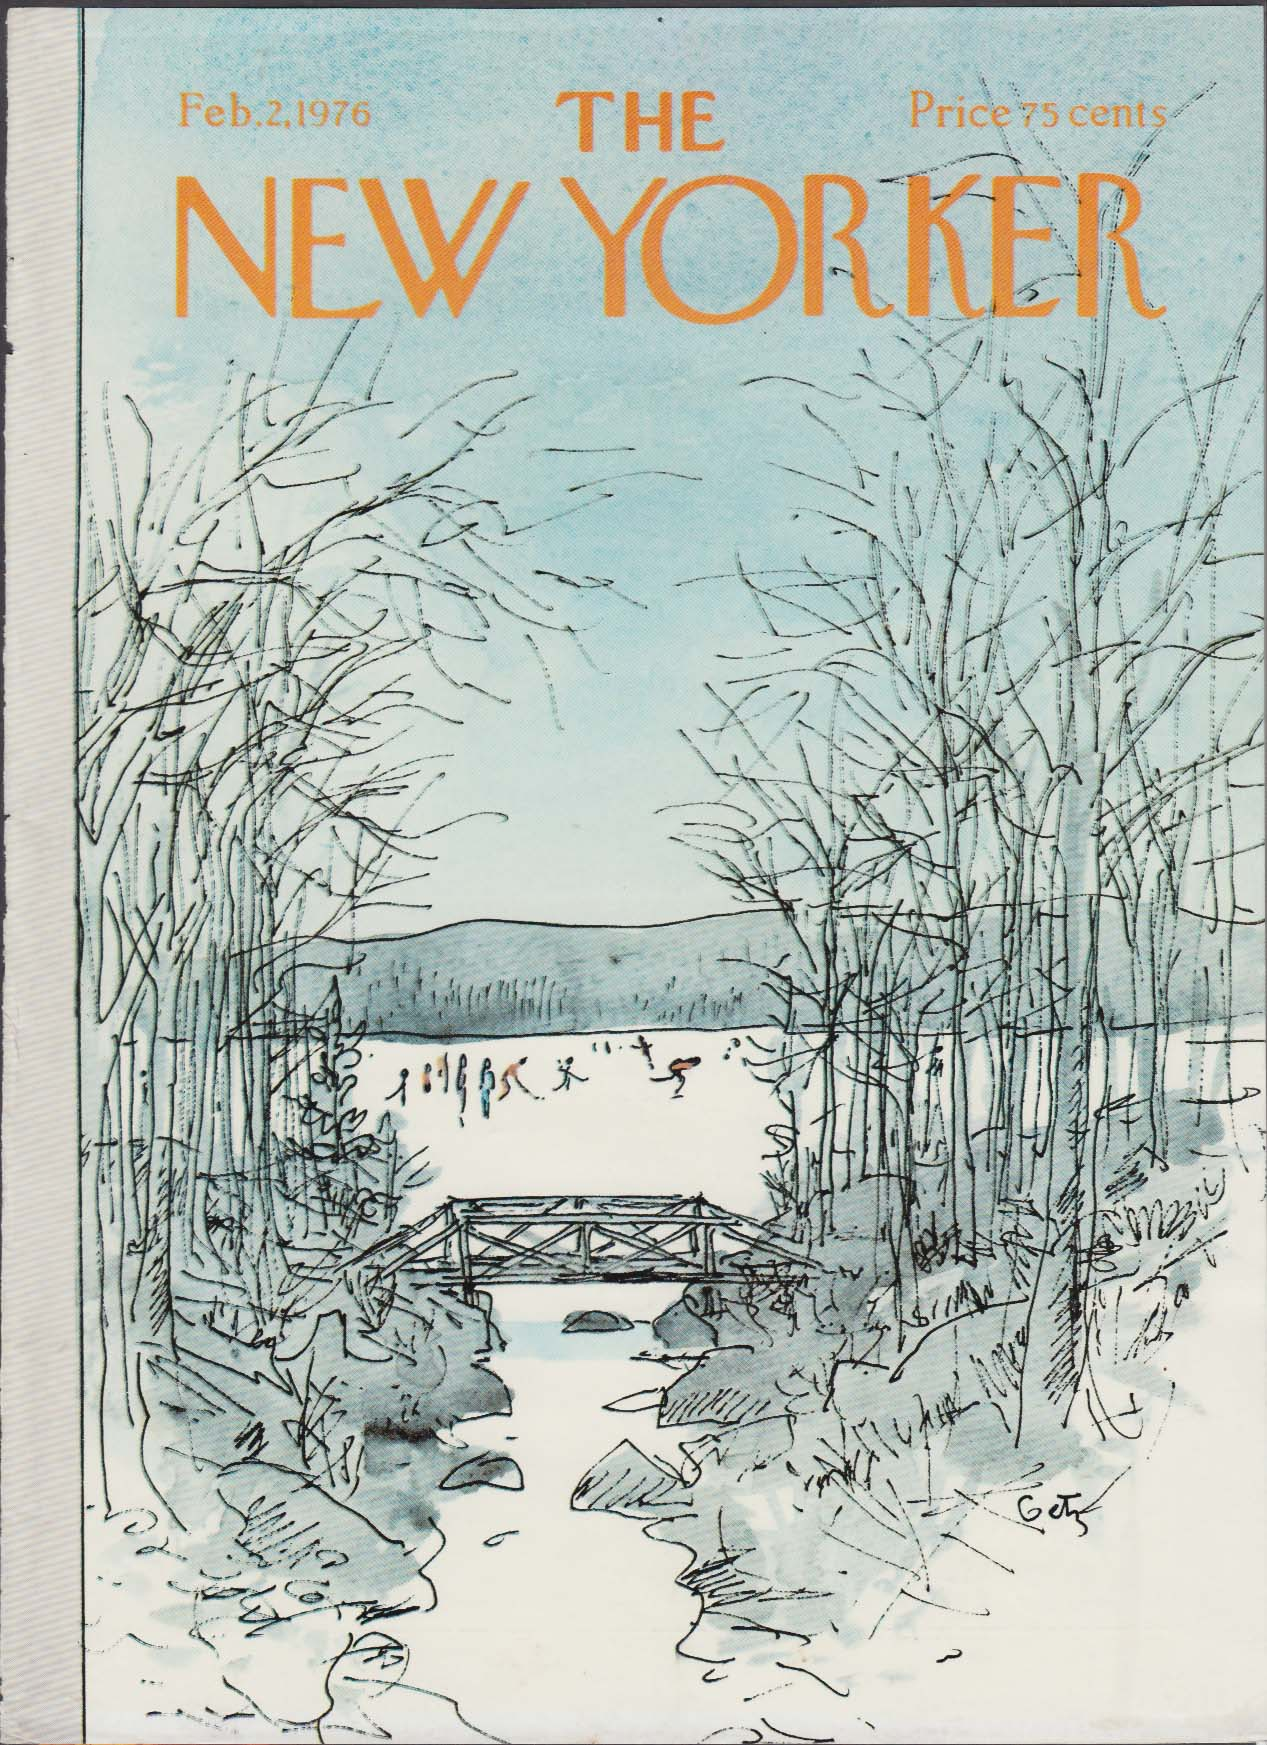 New Yorker cover Getz ice skaters on lake 2/2 1976